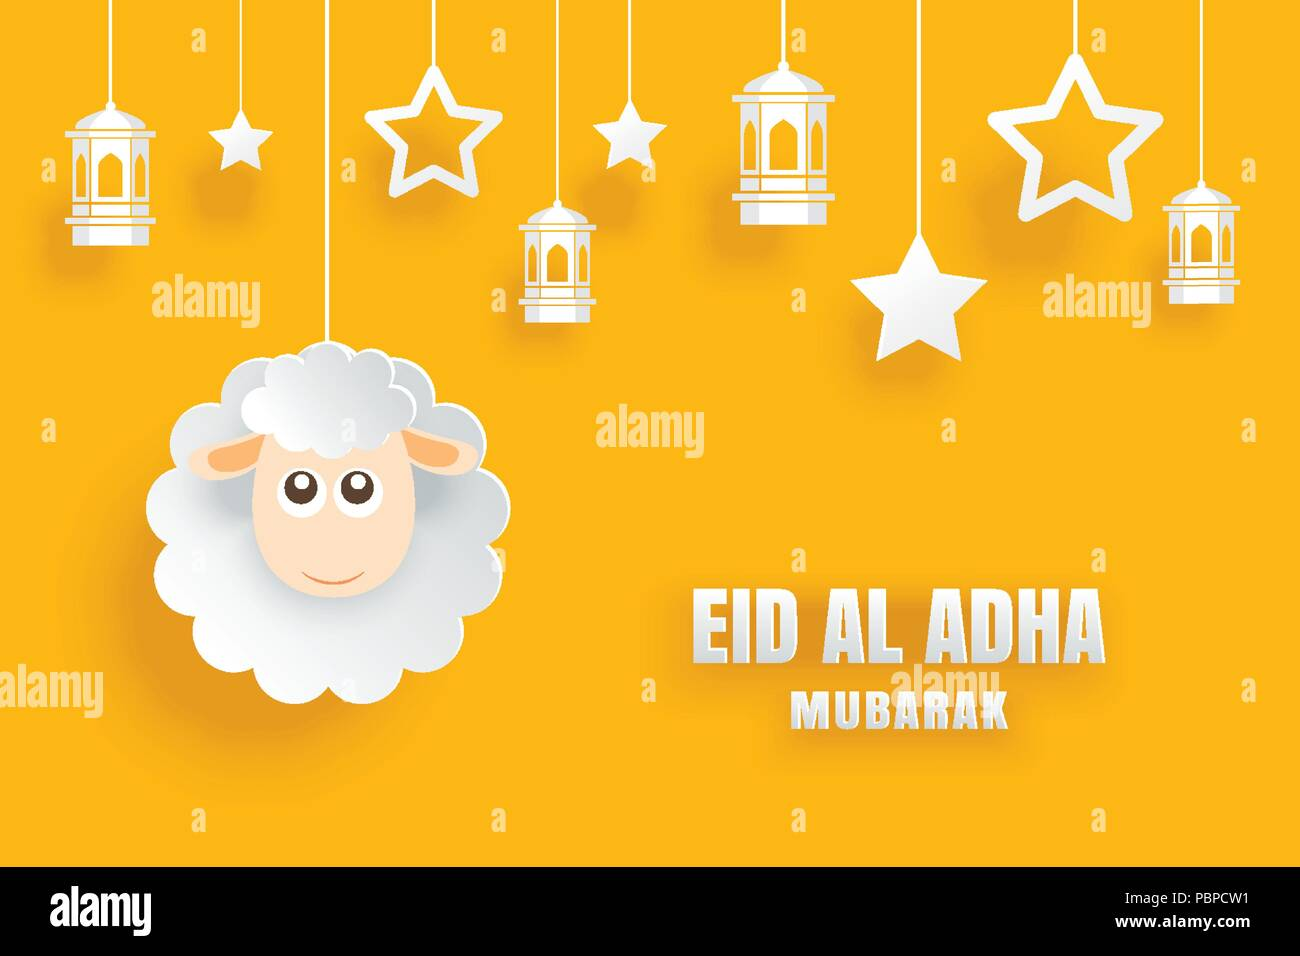 eid al adha mubarak celebration card with sheep in paper art yellow background use for banner poster flyer brochure sale template stock vector image art alamy https www alamy com eid al adha mubarak celebration card with sheep in paper art yellow background use for banner poster flyer brochure sale template image213778685 html